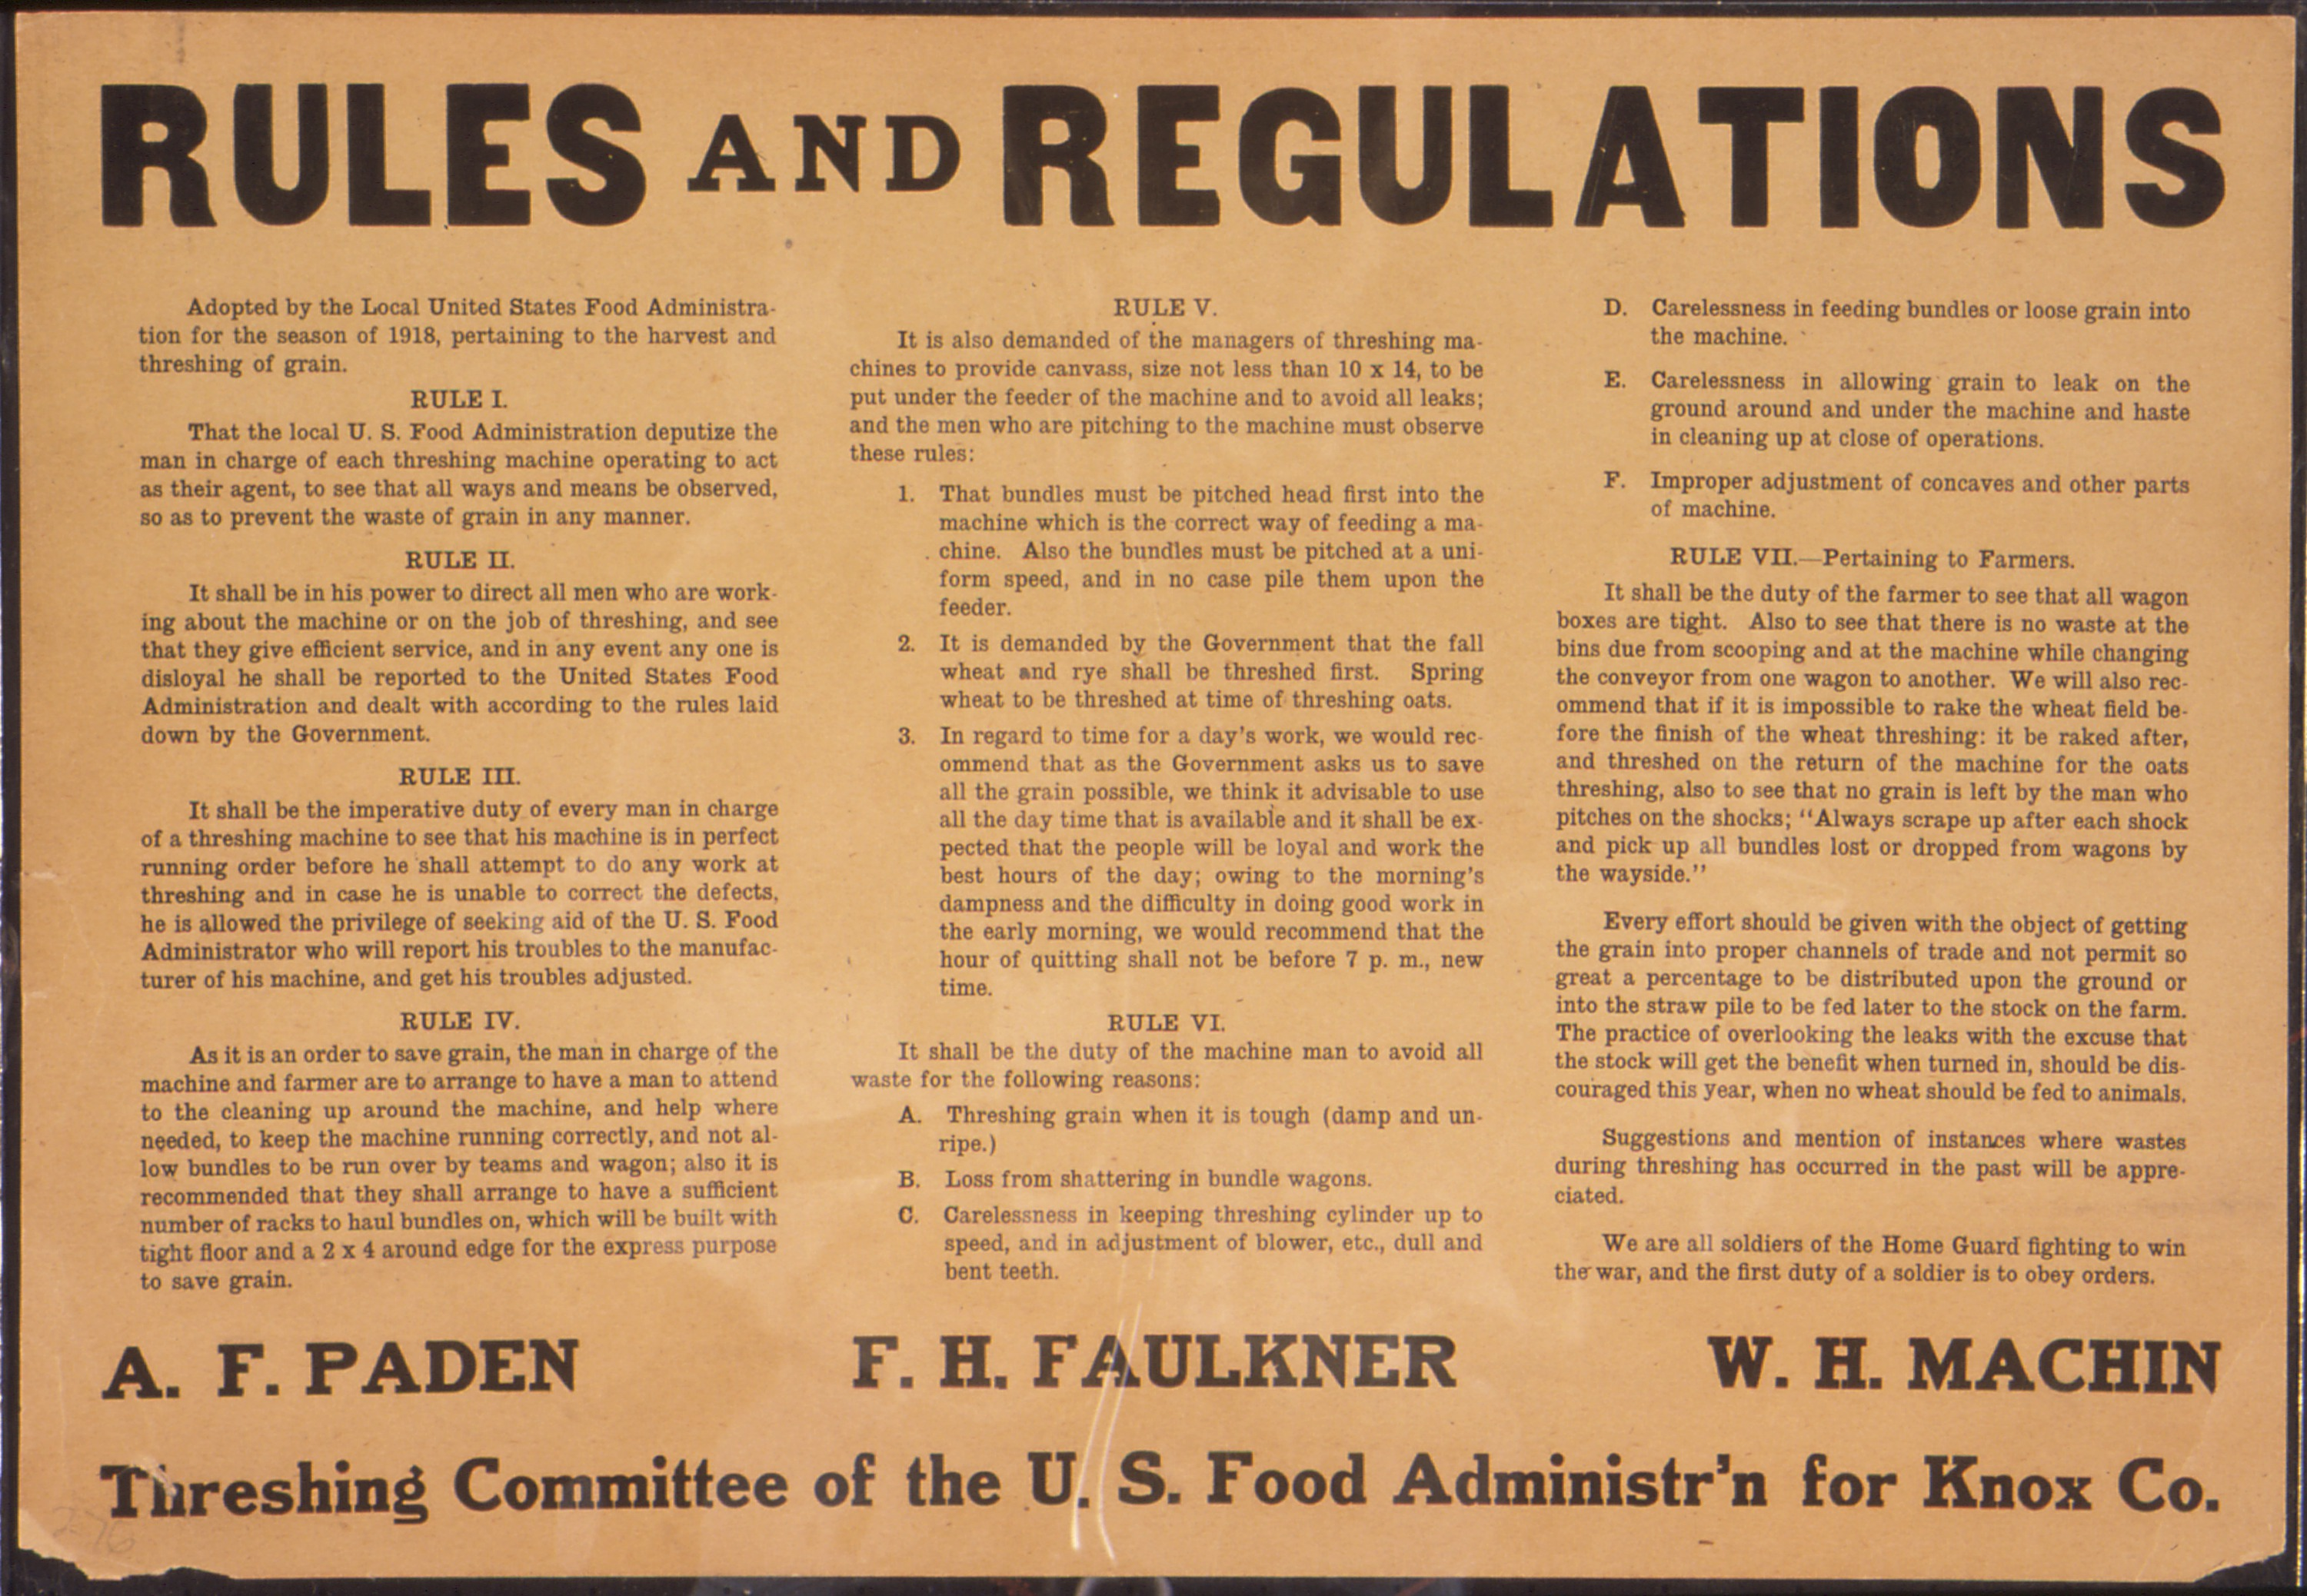 File Quot Rules And Regulations Threshing Committee Of The U